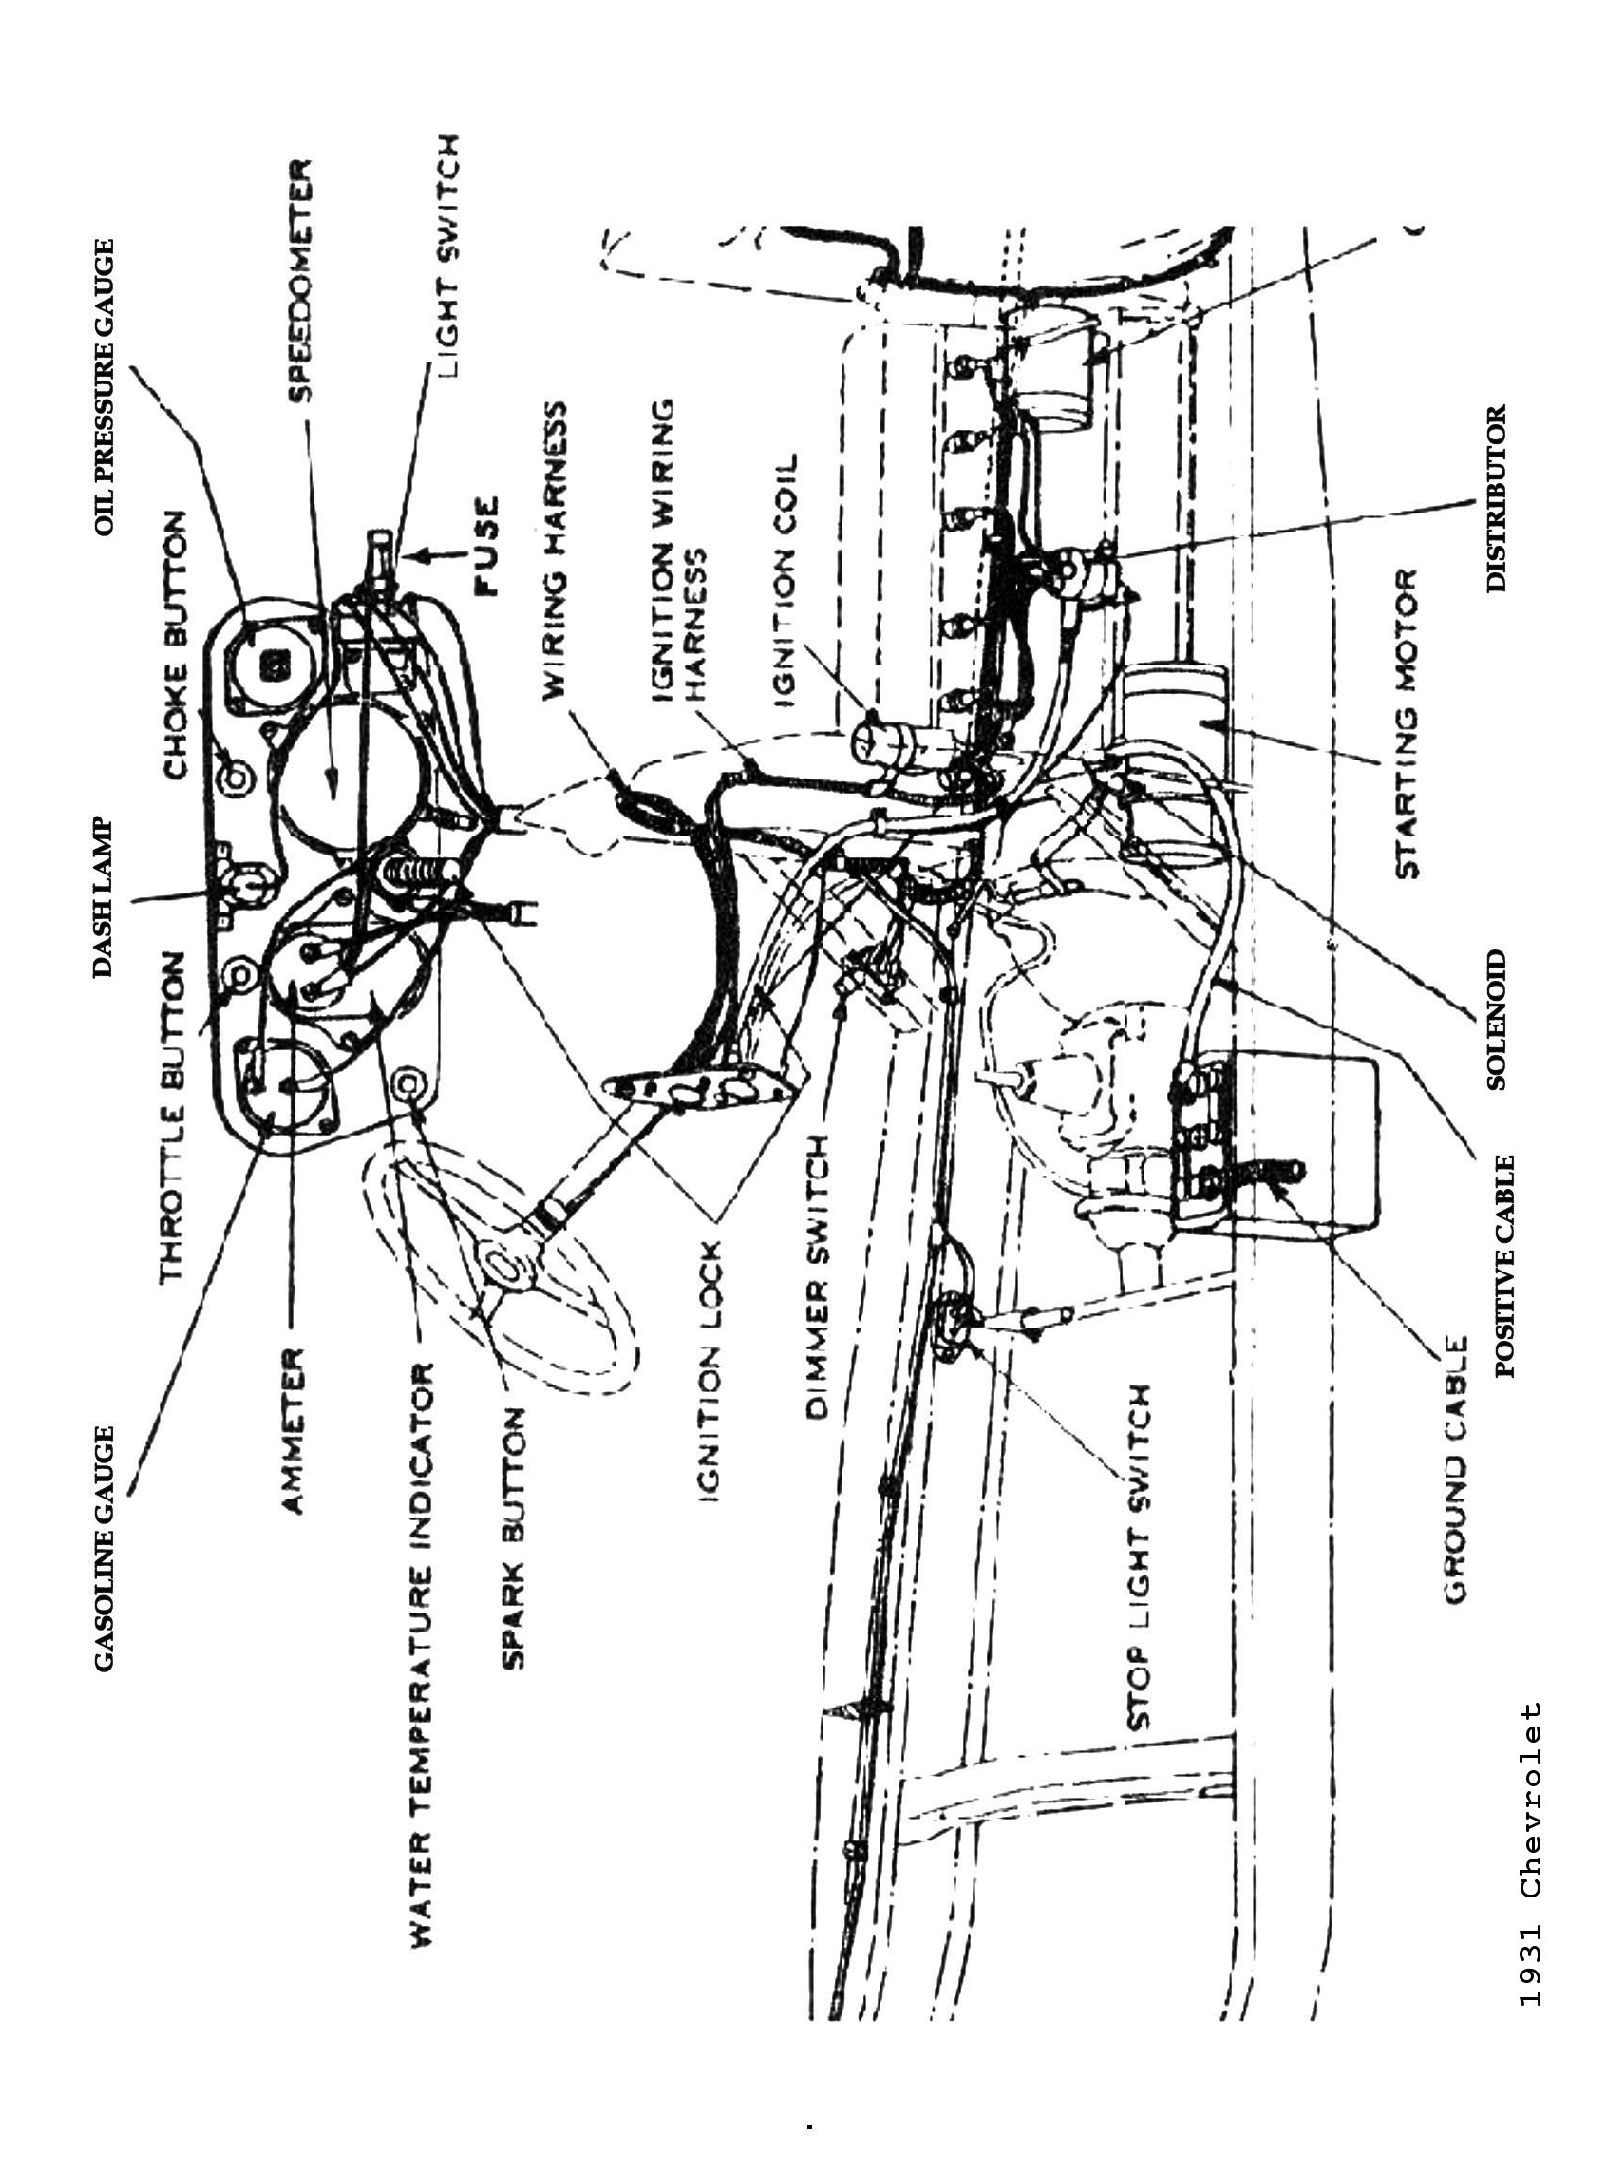 31harness chevy wiring diagrams wiring harness diagram at bayanpartner.co